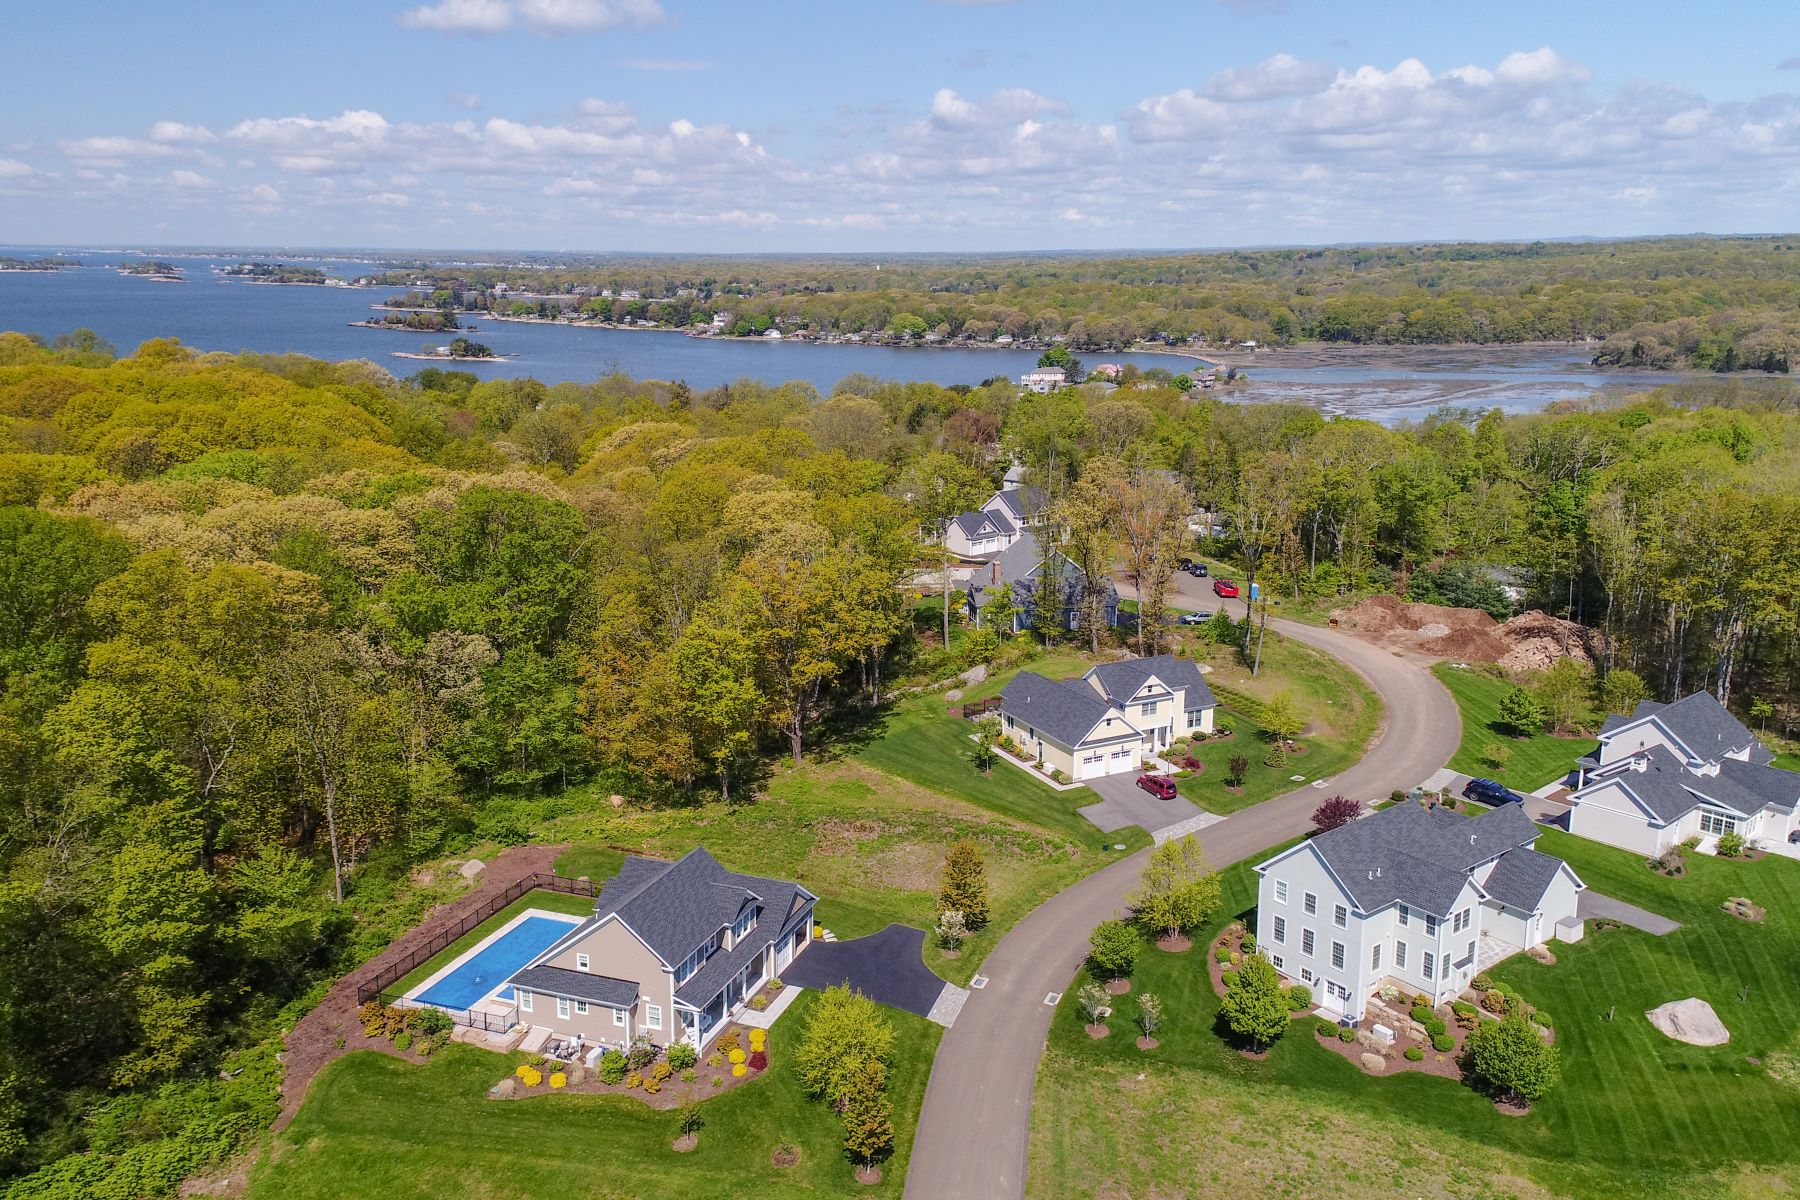 Single Family Homes for Active at Benton's Knoll in Sachem's Head 3 Benton's Knoll Guilford, Connecticut 06437 United States